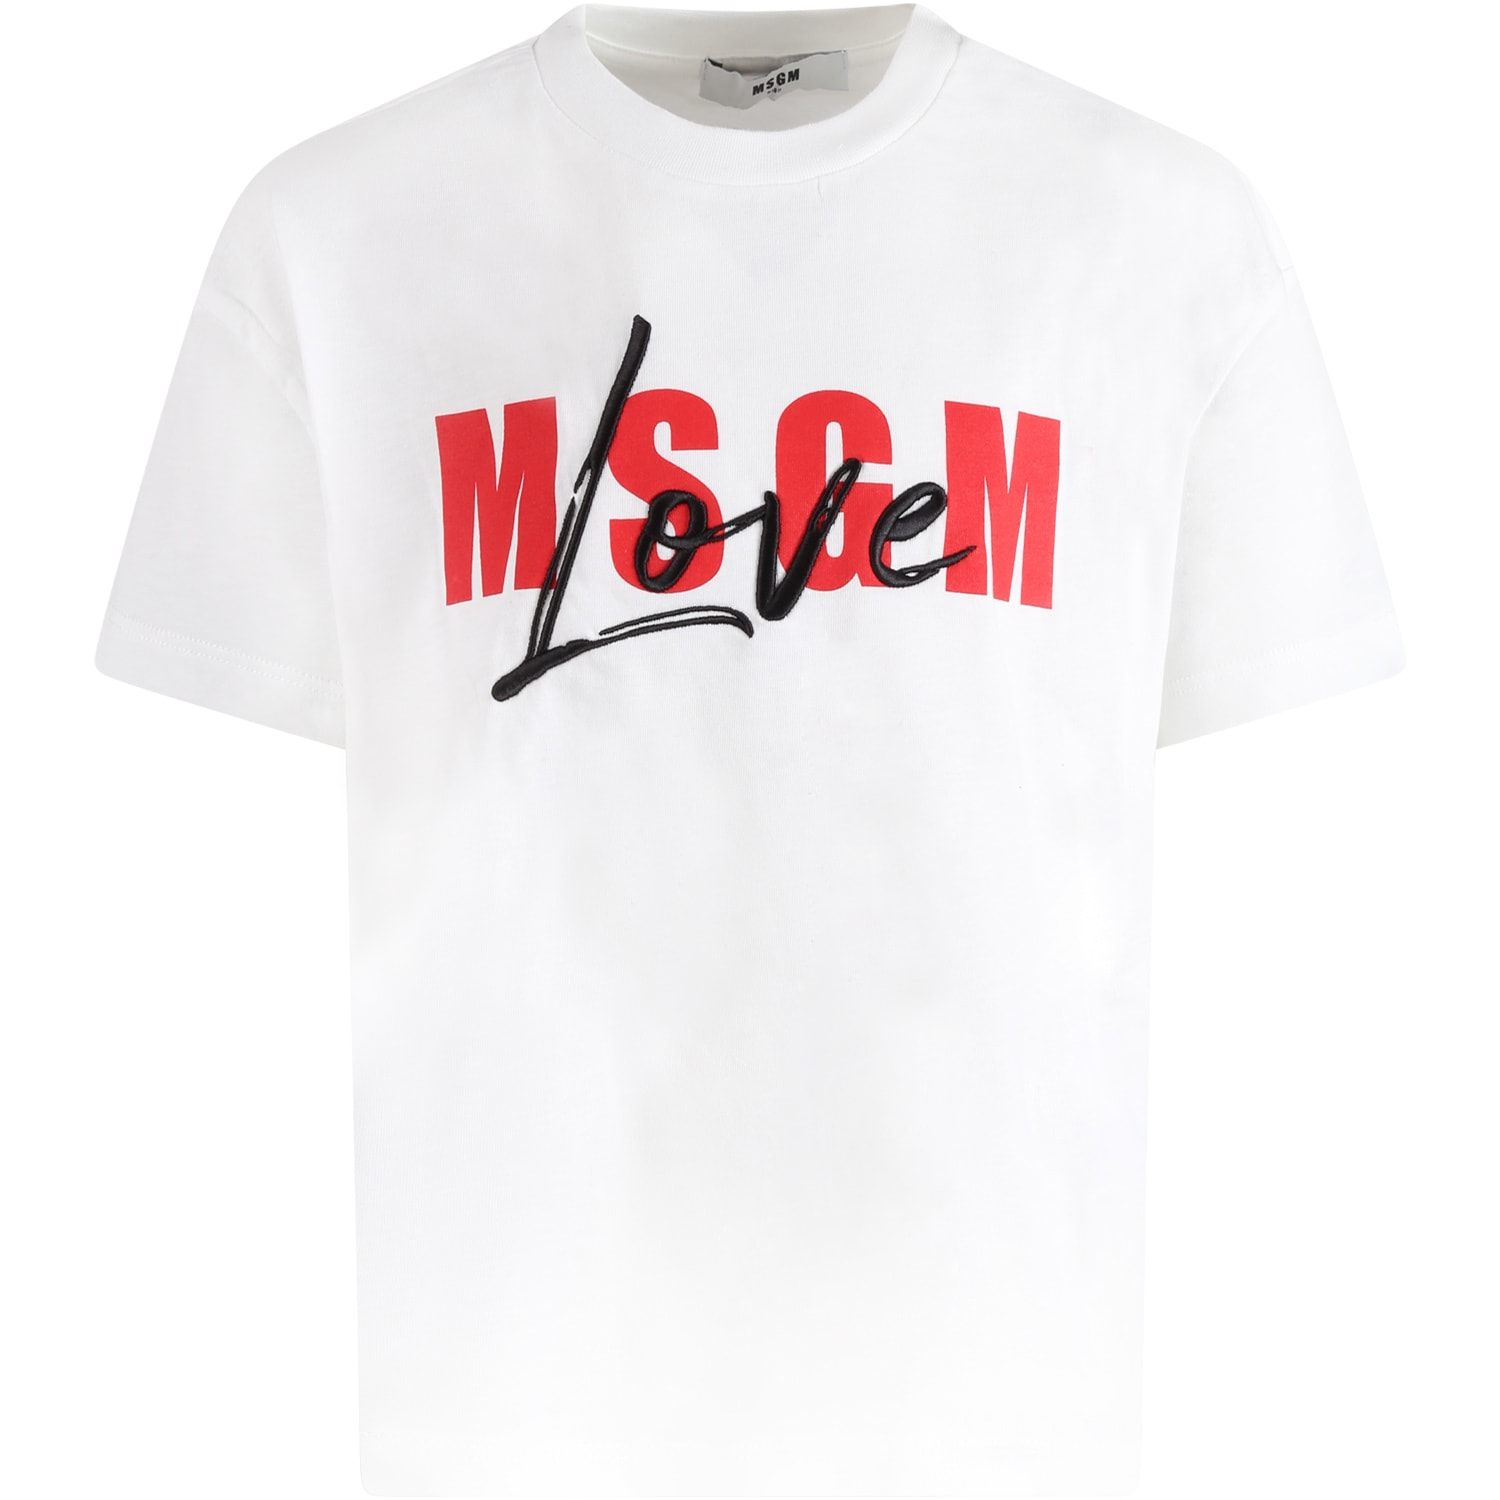 MSGM WHITE T-SHIRT FOR GIRL WITH RED LOGO